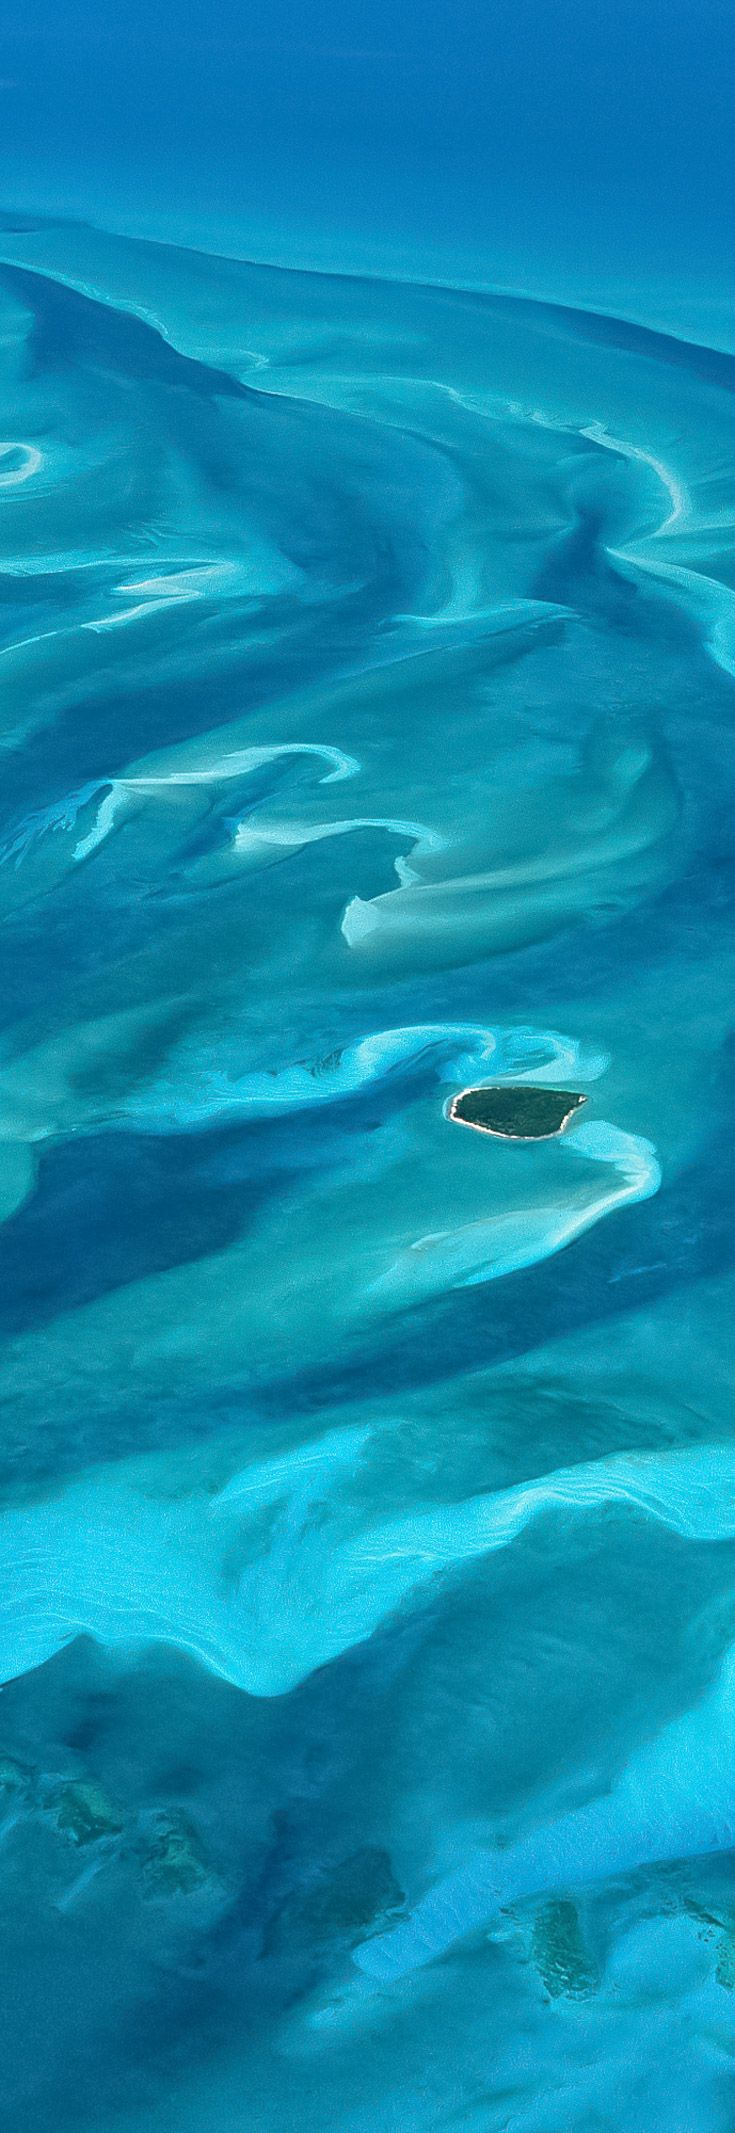 Travel inspiration : desolate island in the ocean. Click through for more travel tips and inspiration!